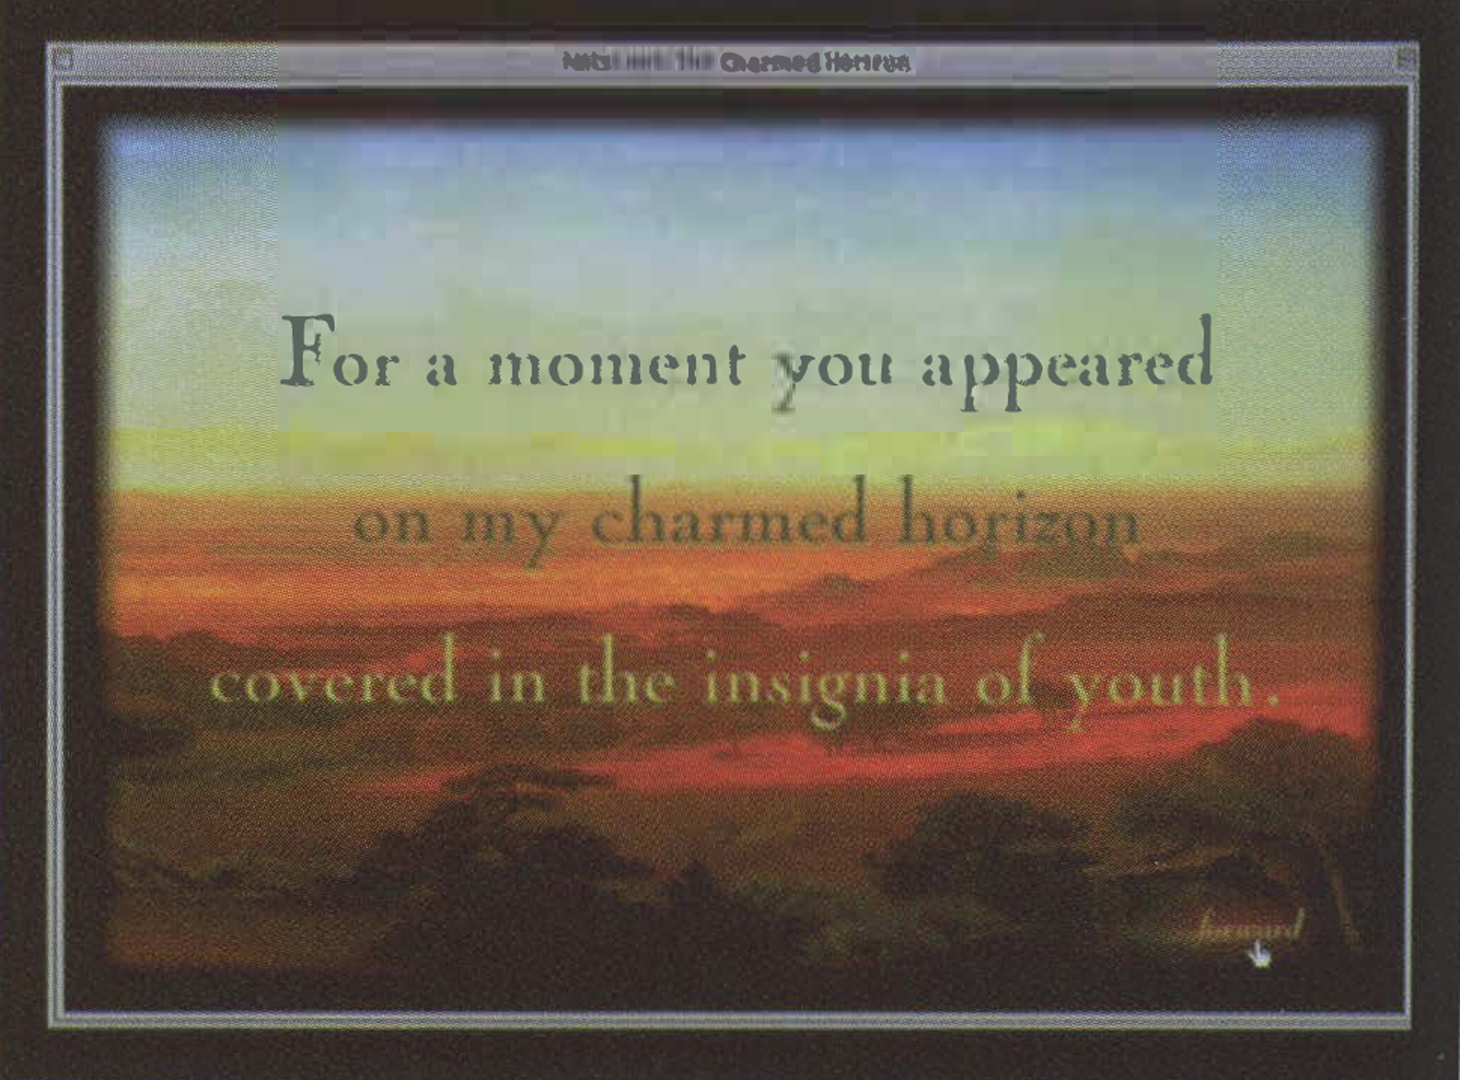 ©1999, Kim Stringfellow, The Charmed Horizon